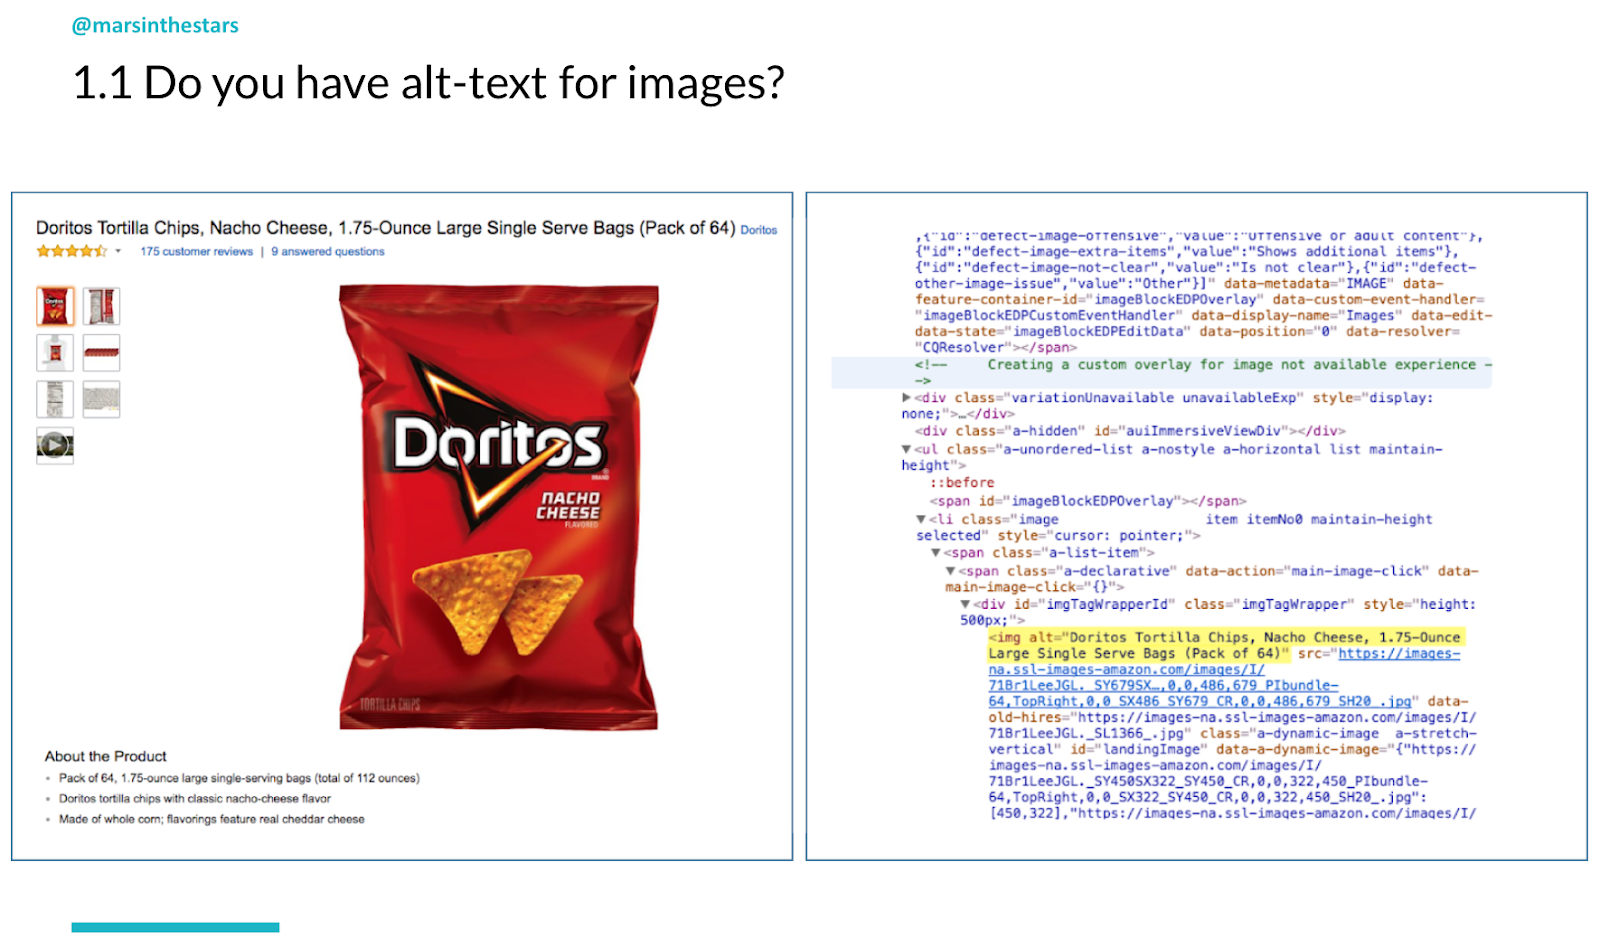 Slide shows alt text describing a packet of Doritos - which is 'Doritos Tortilla Chips, Nacho Cheese, 1.75 Ounce, Large Single Serve Bags (Pack of 64).